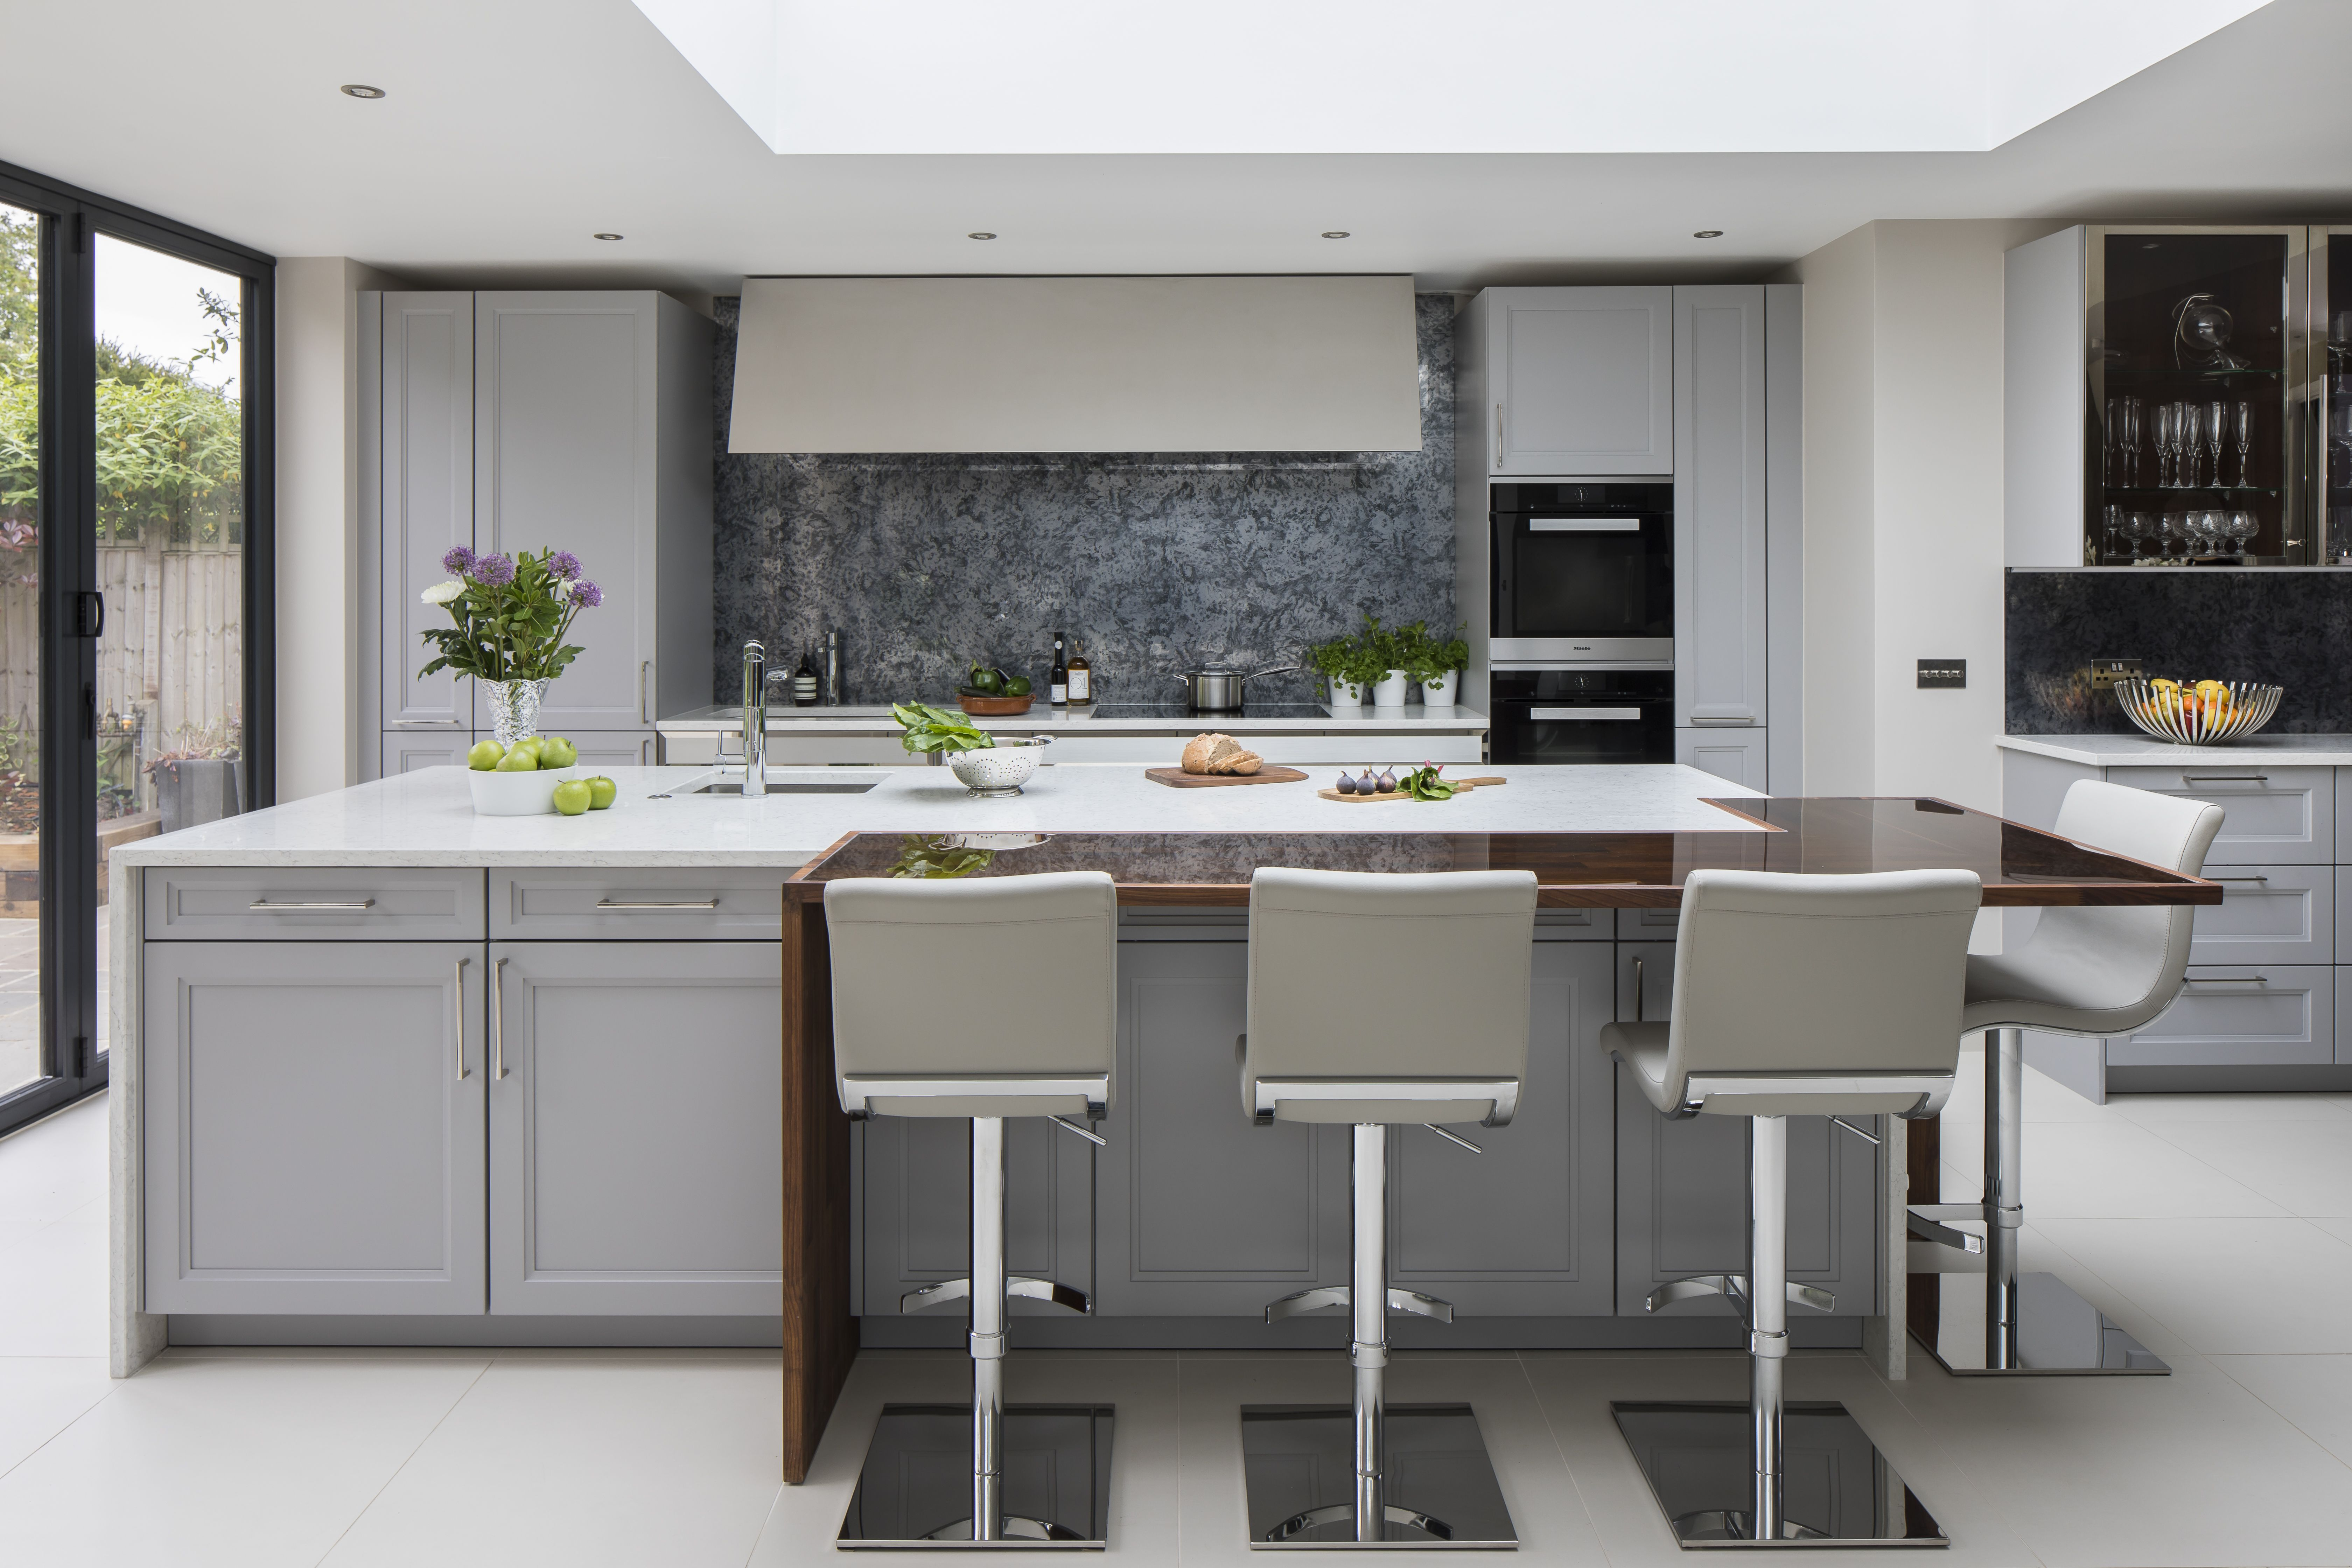 Latest #Photoshoot For Our #Siematic #Classic Kitchen  Httpswww